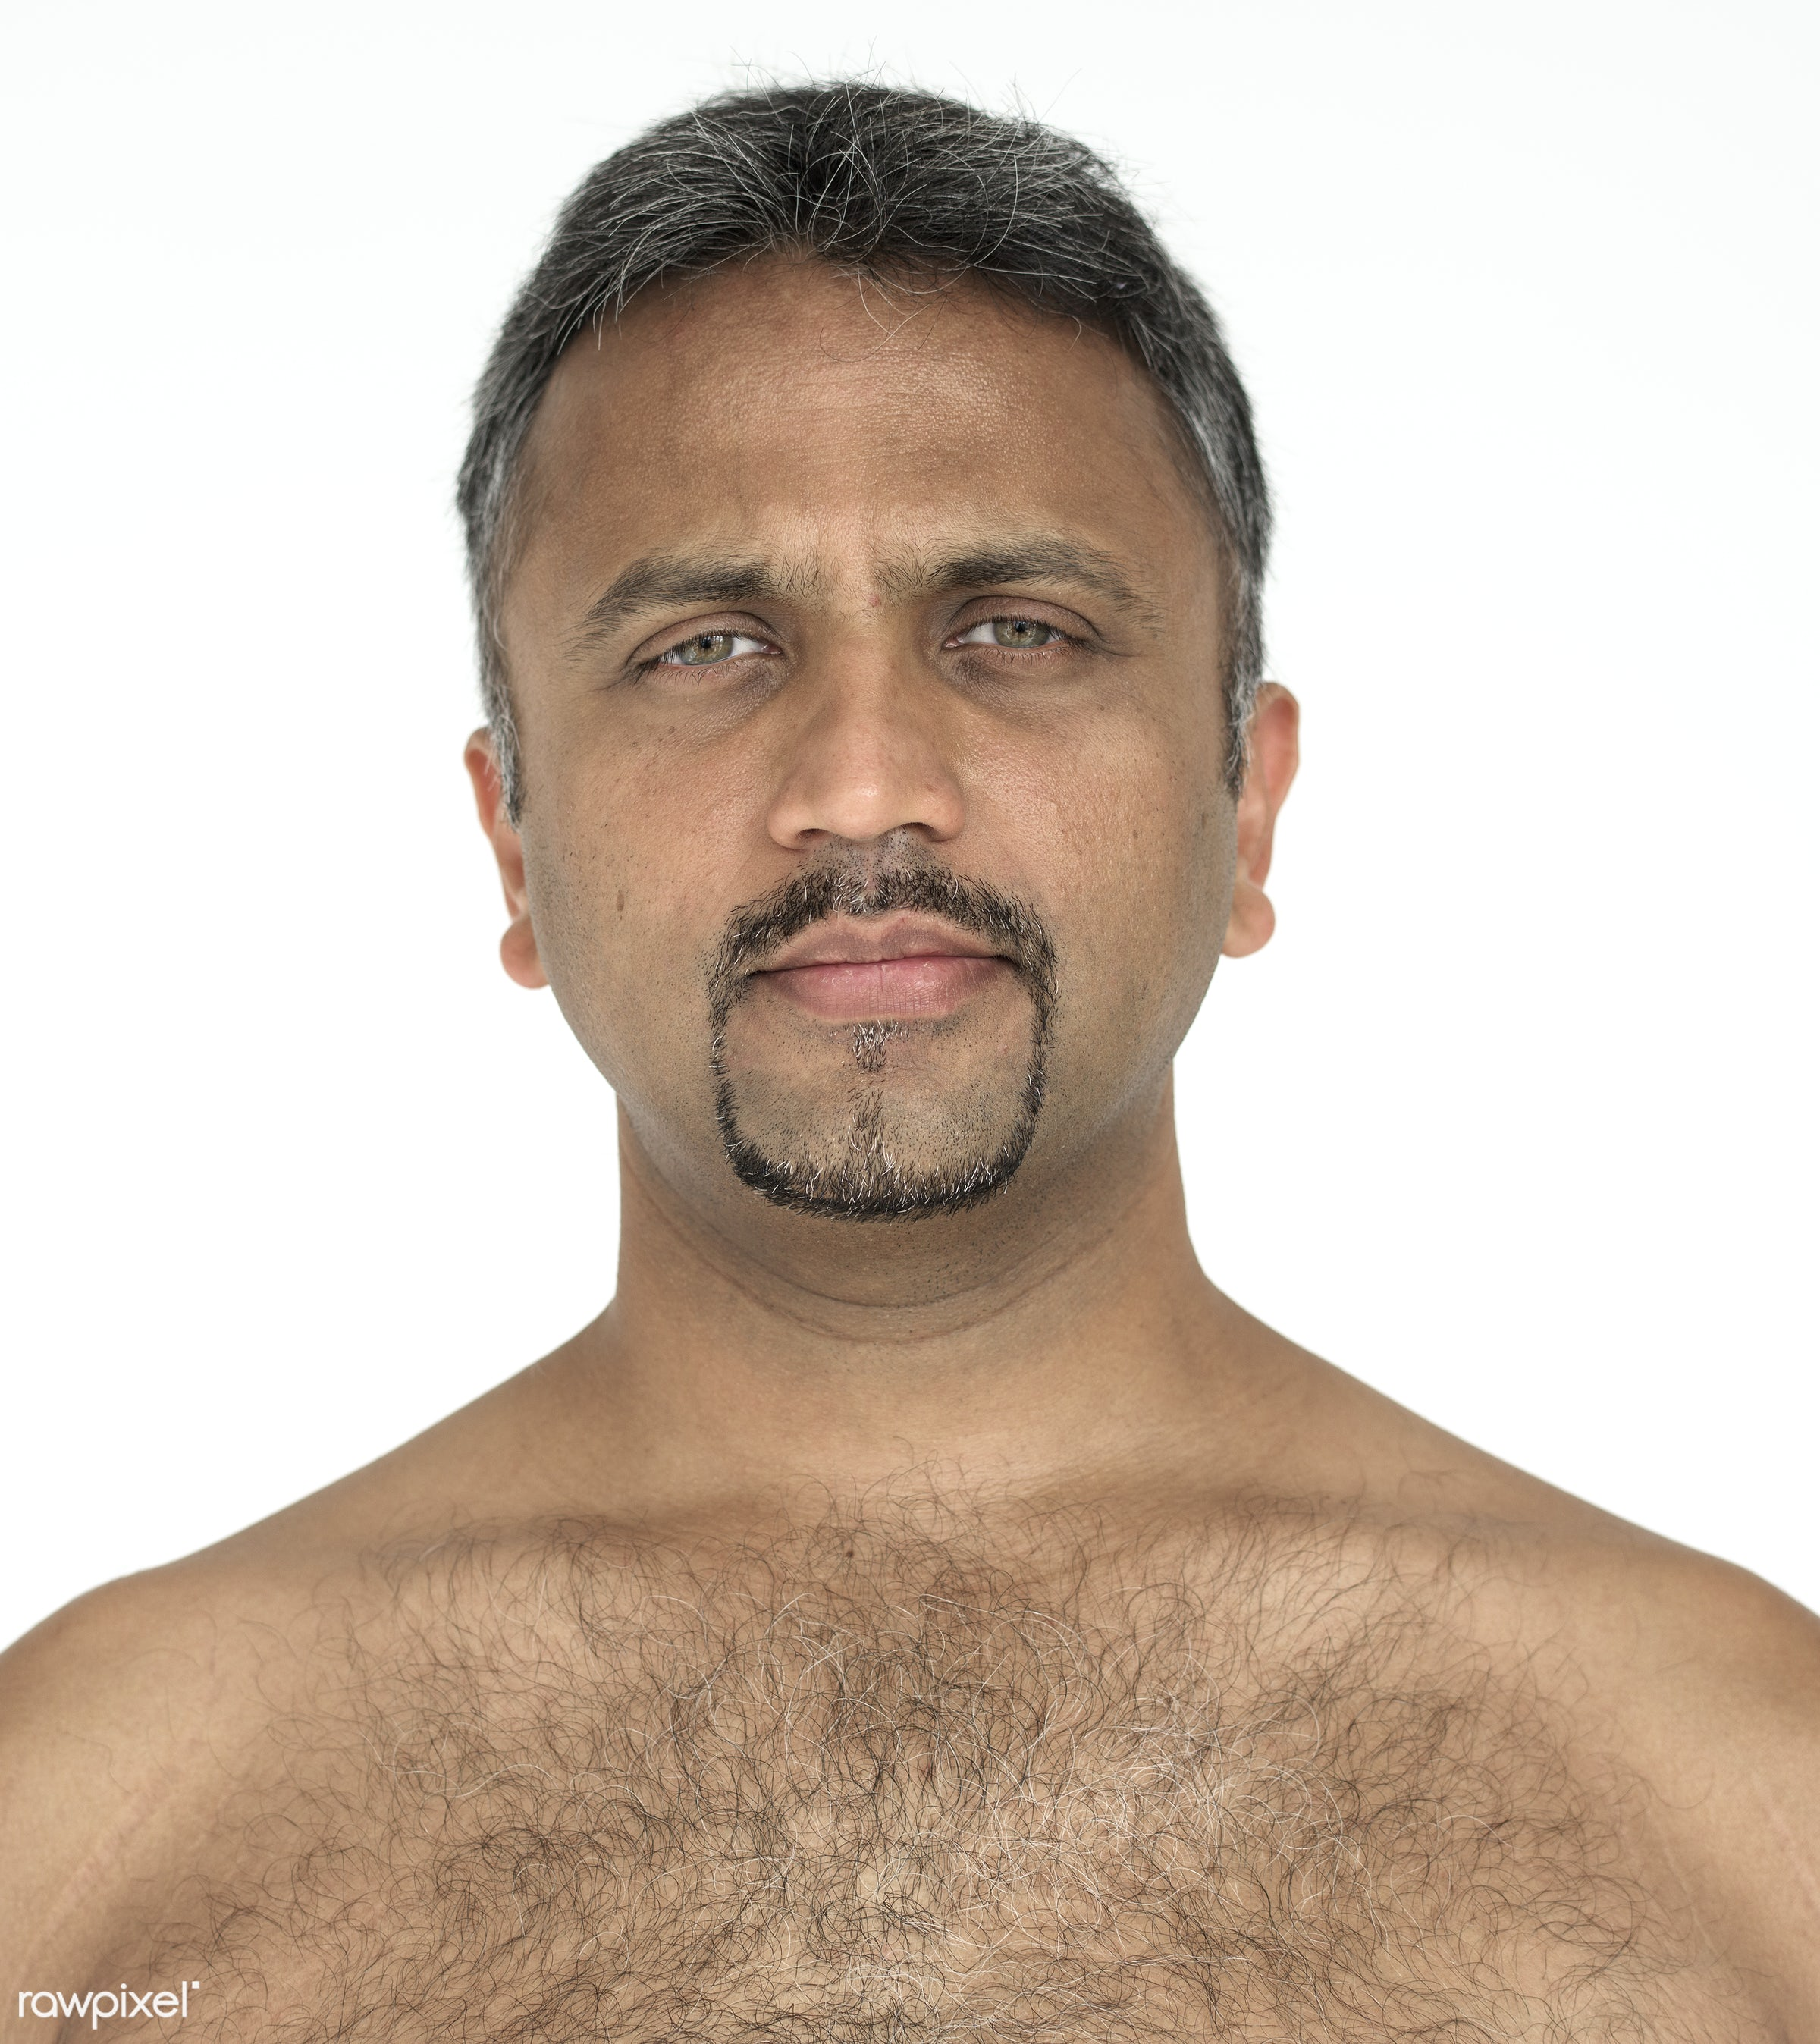 expression, studio, person, indian ethnicity, one, chest, people, race, style, pensive, lifestyle, serious, hair, man,...